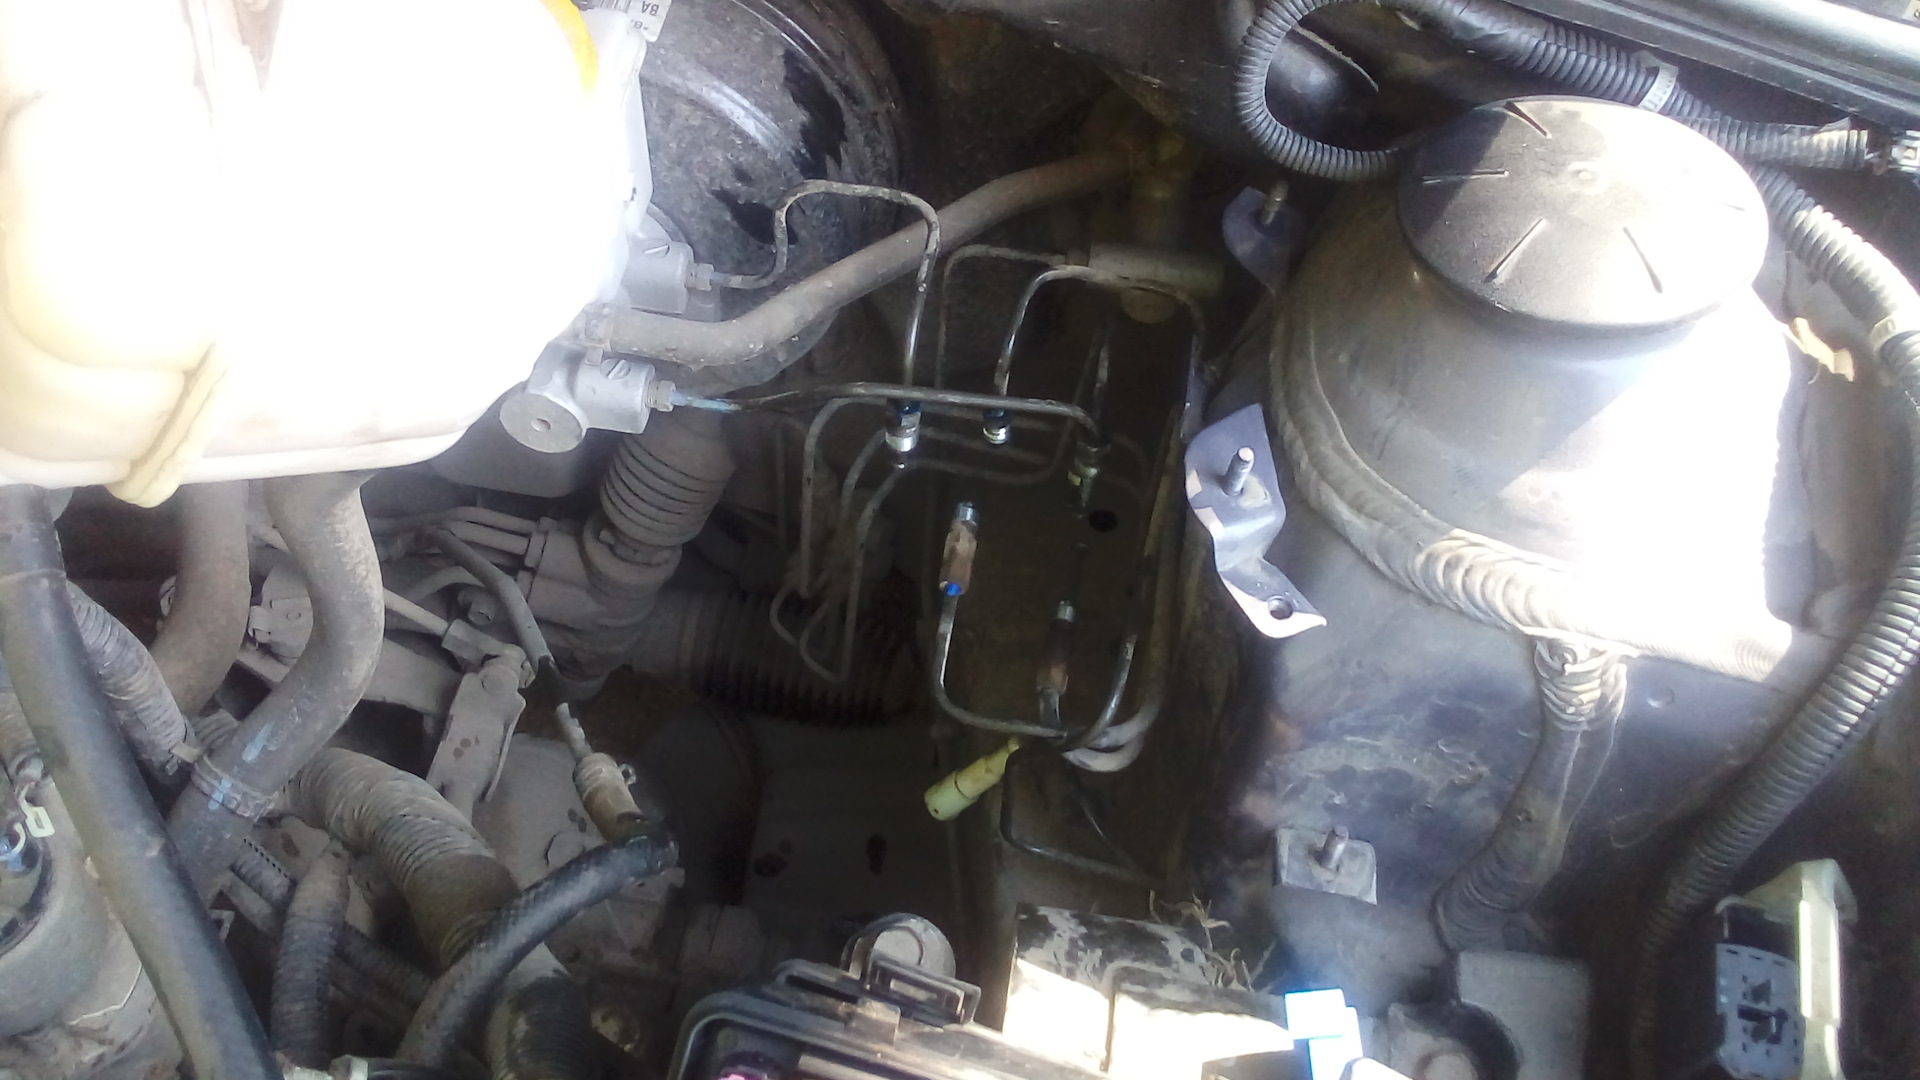 chevrolet lacetti traction control system где